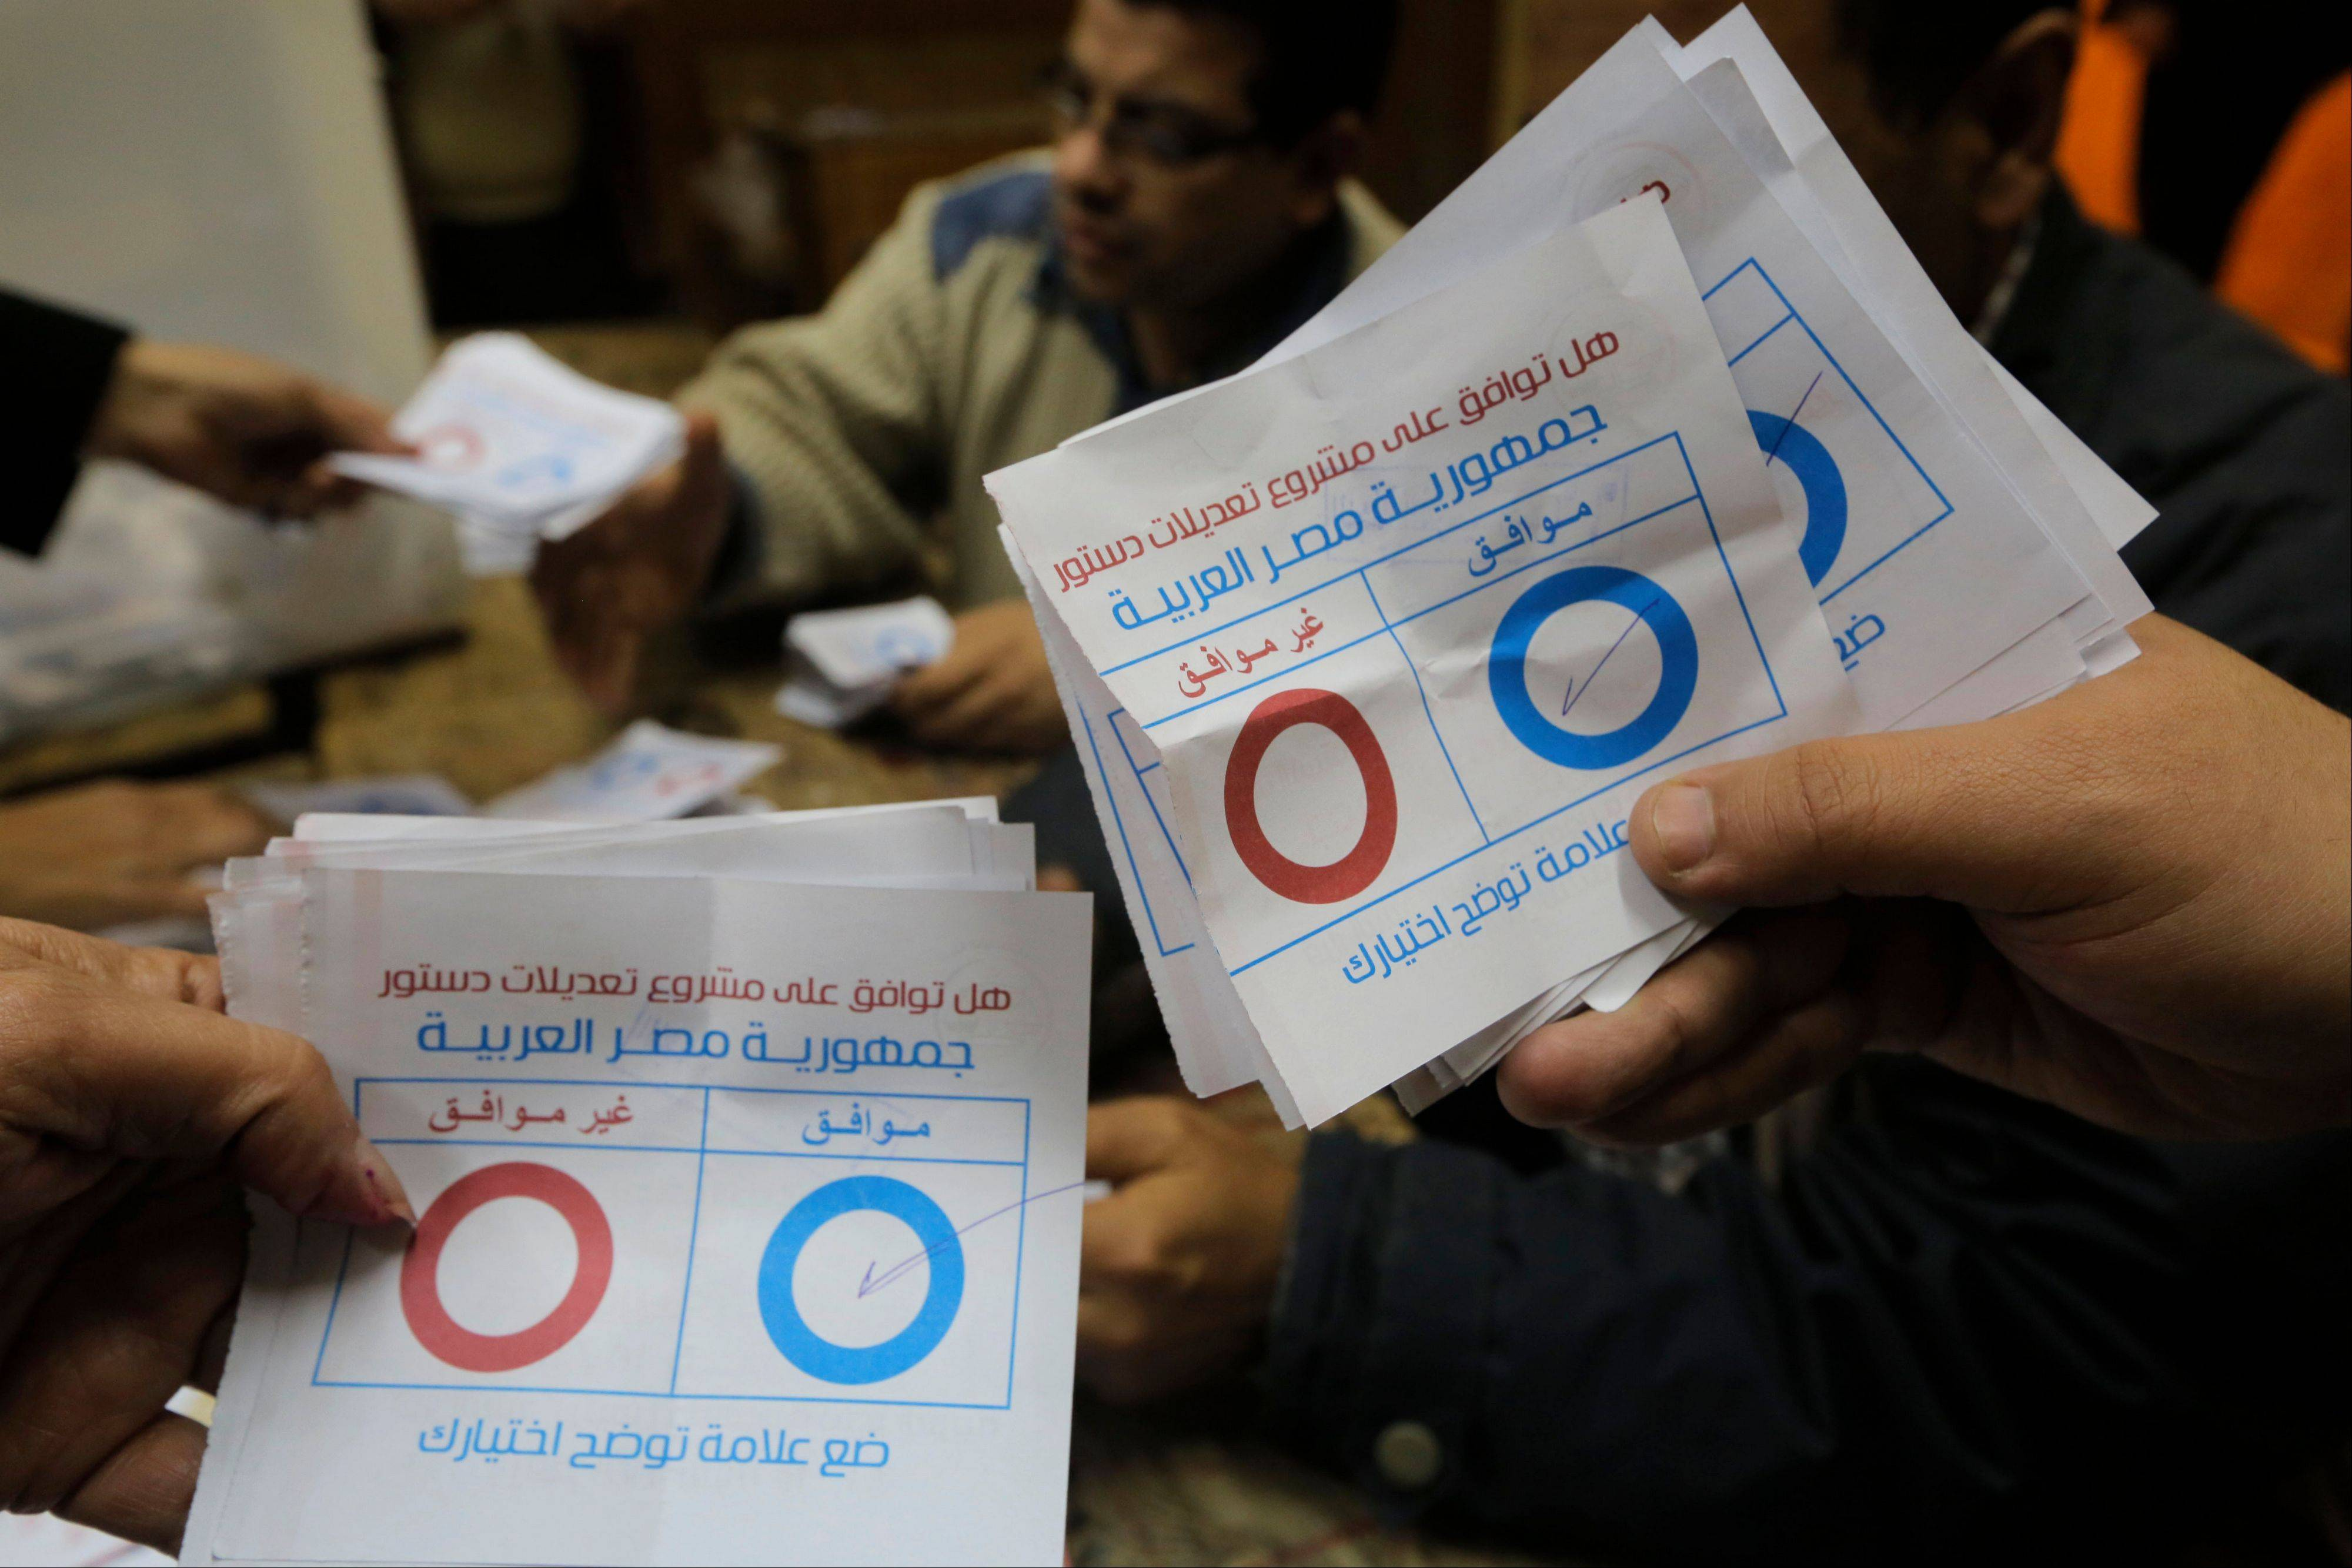 An overwhelming majority of Egyptians who voted on the country's new constitution have backed the draft charter, a senior Egyptian official said Thursday.